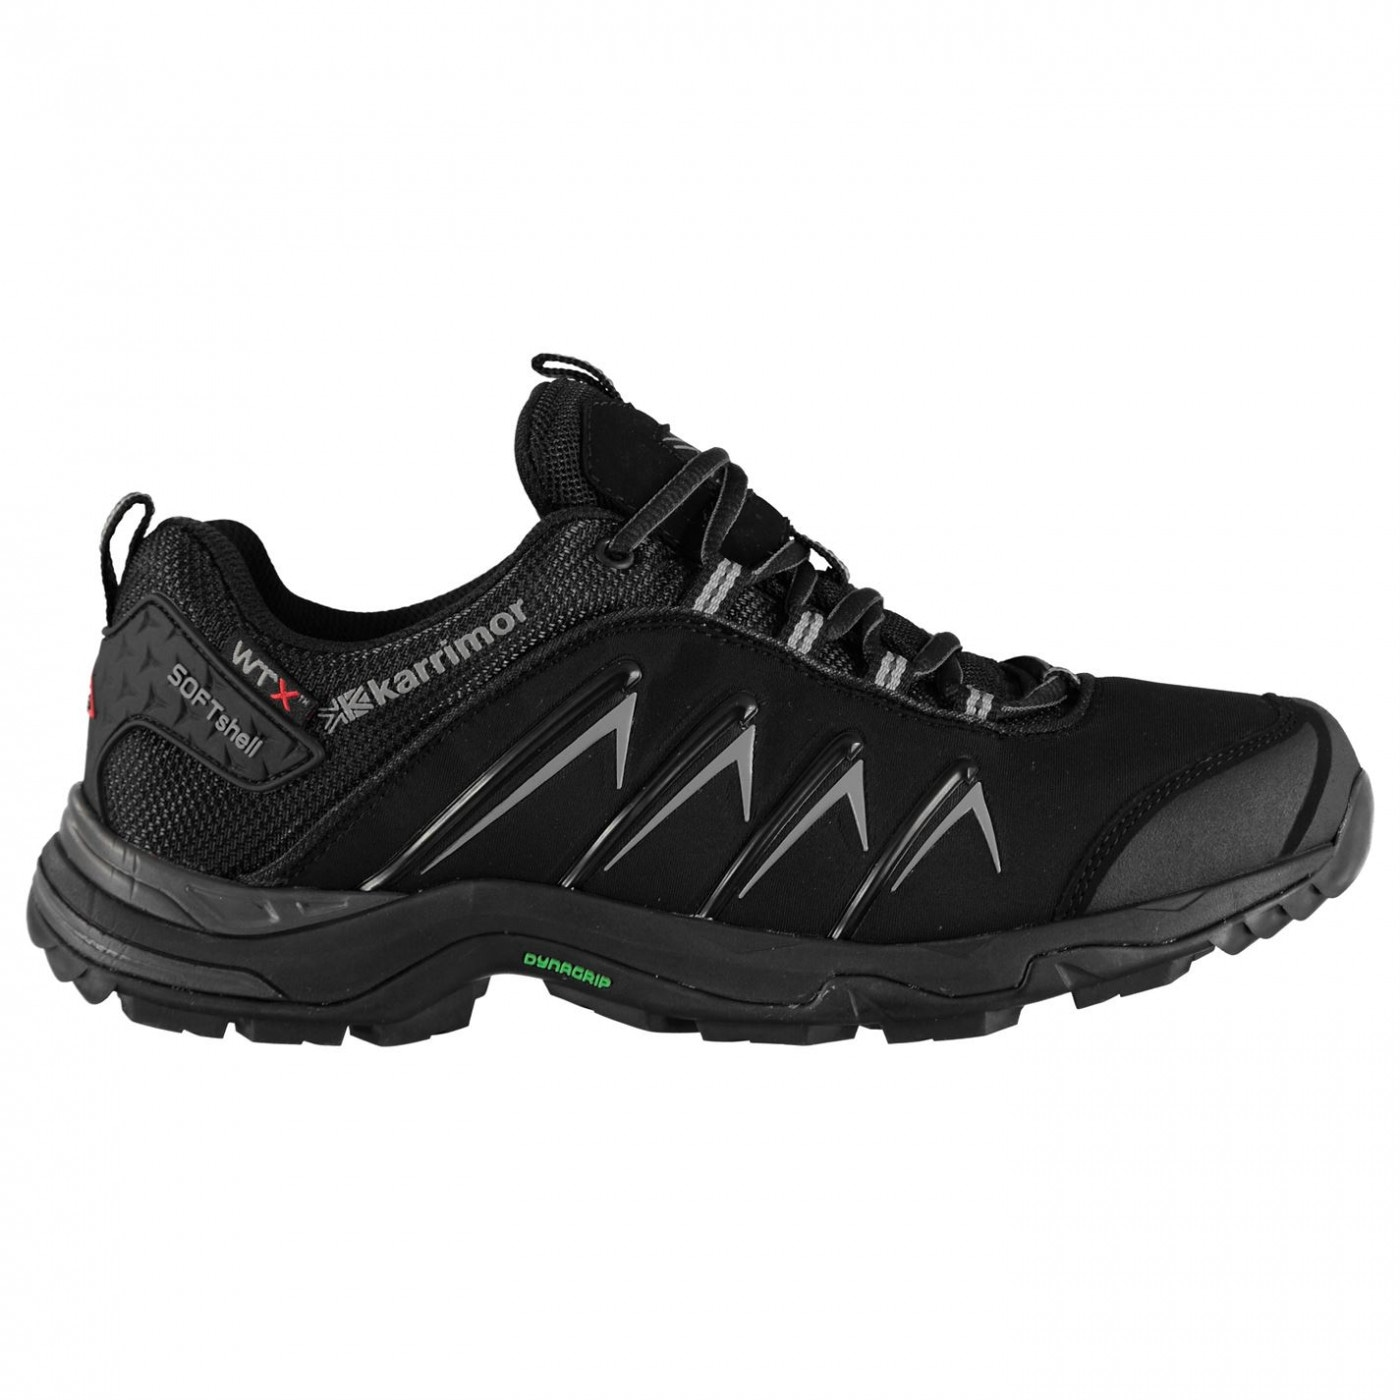 Karrimor Surge Soft Shell WTX Mens Walking Shoes